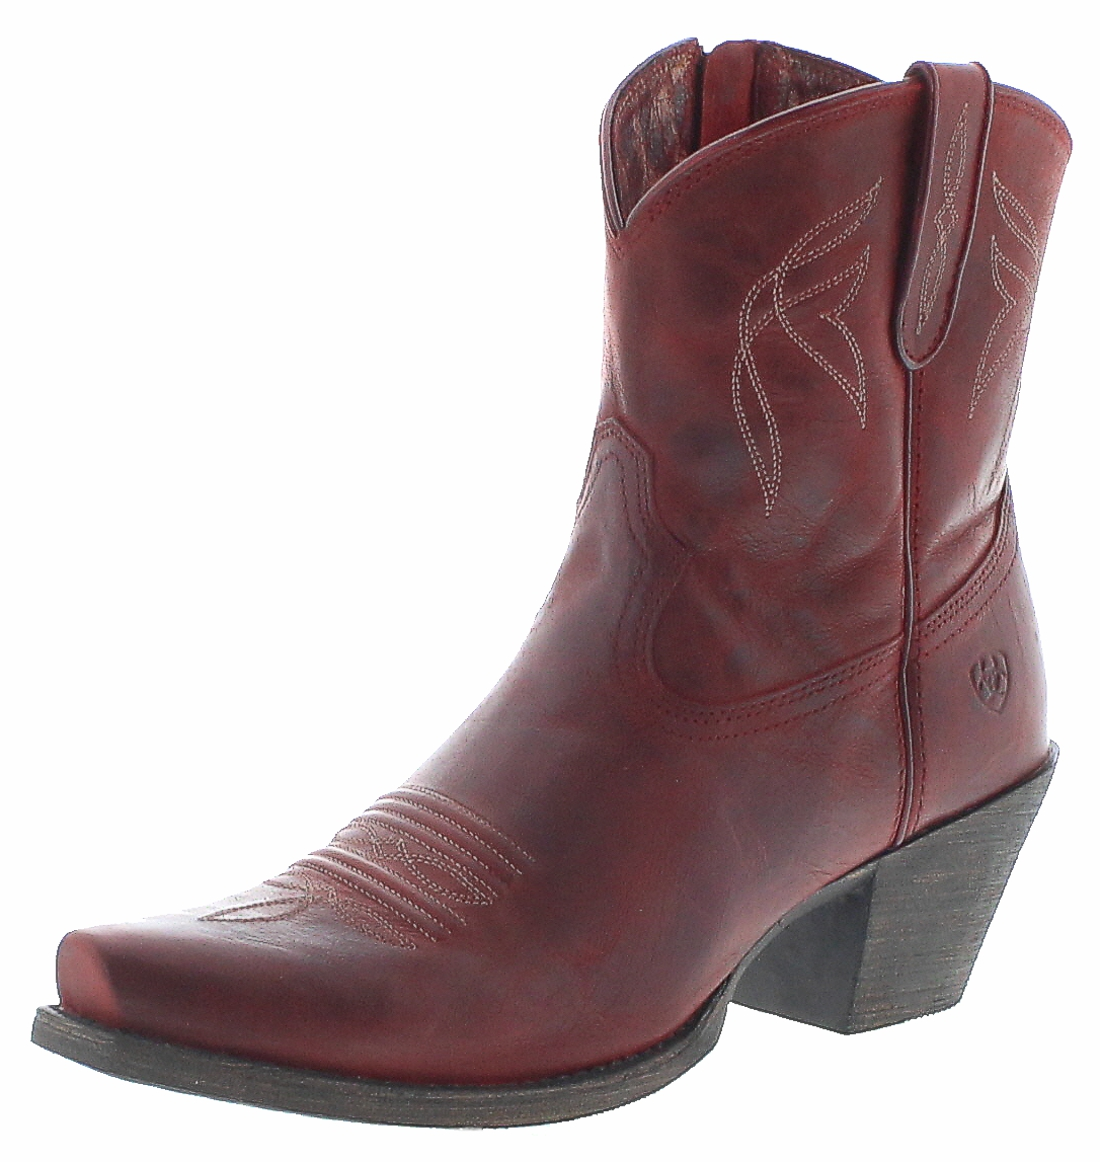 Ariat 27260 LOVELY Grenadine Ankle boots women - red